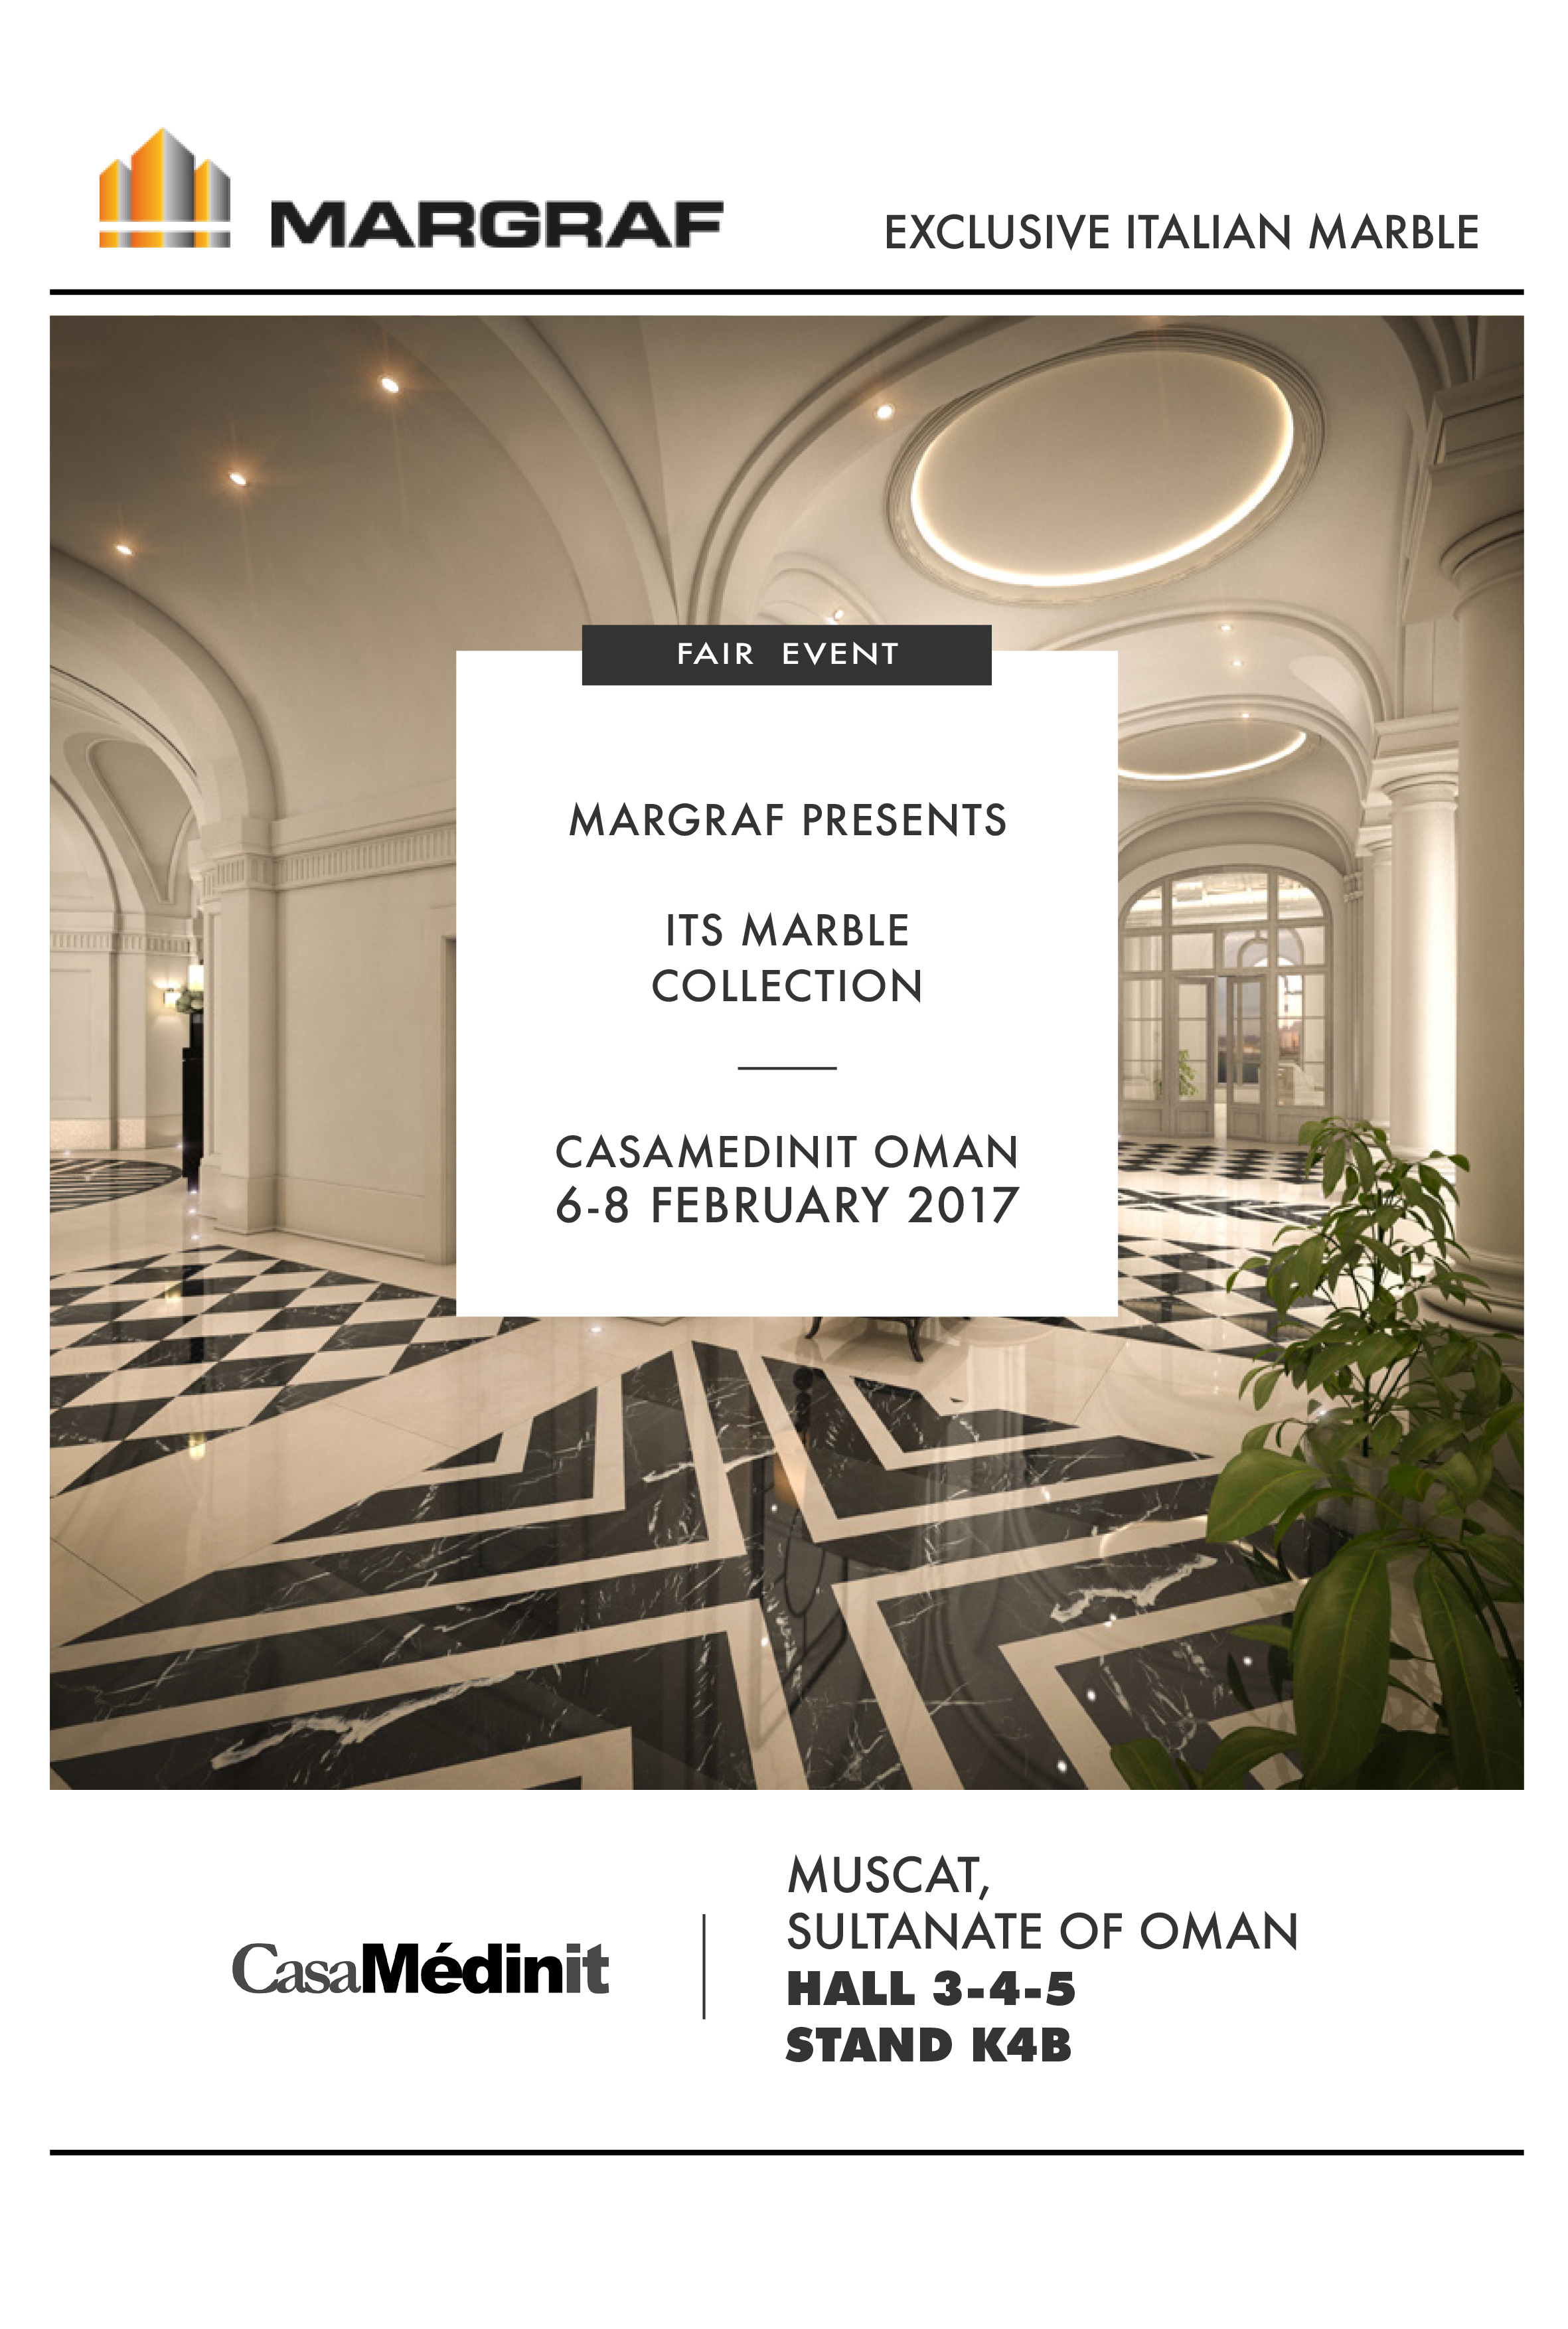 Newsletter_margraf_event_CasaMedinit_Oman_2018-3